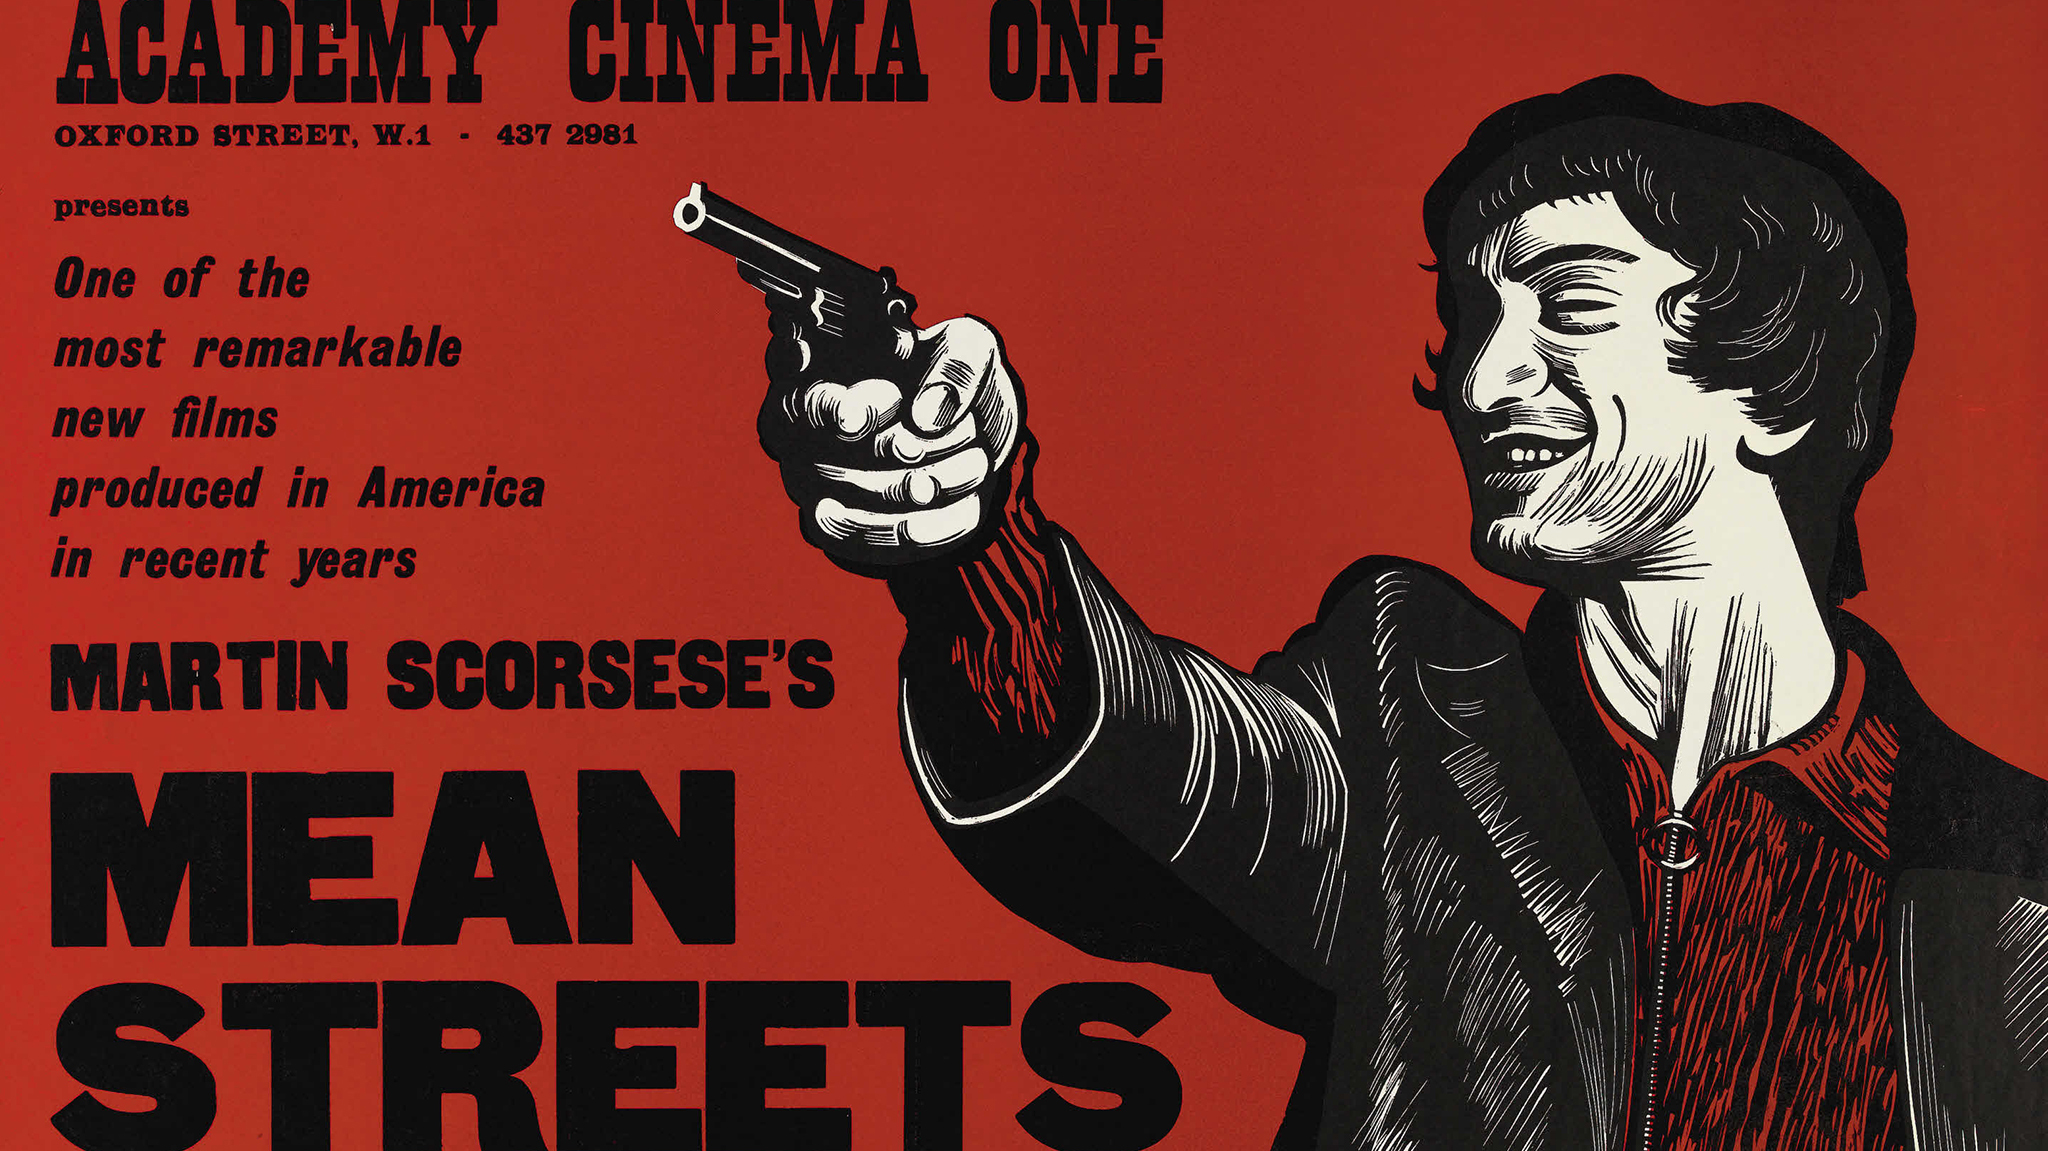 See Martin Scorsese's movie posters collection